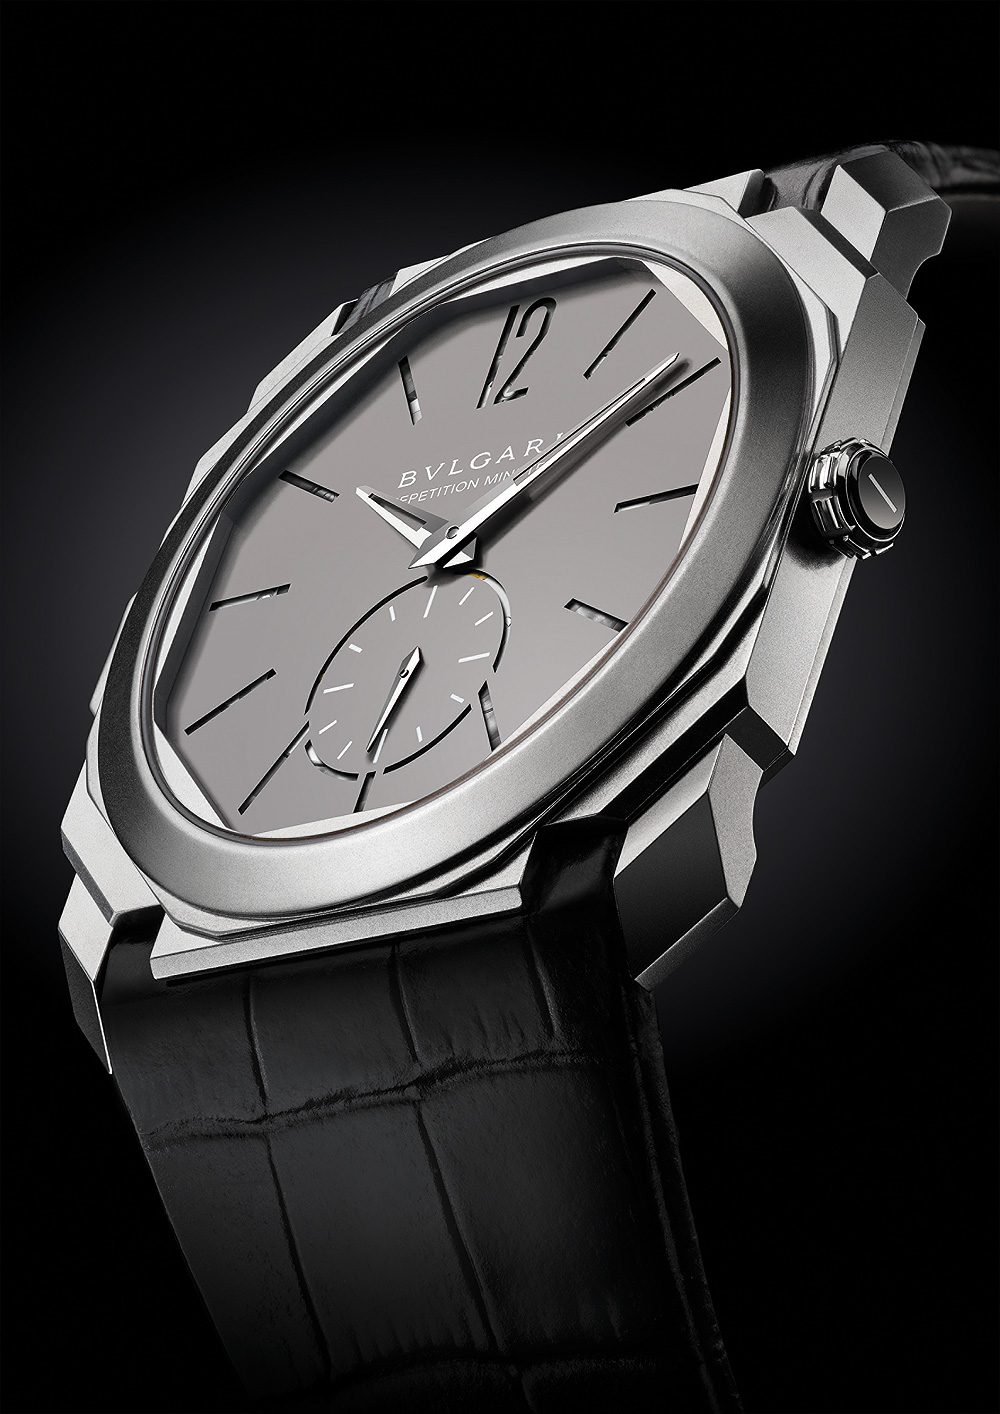 Bulgari Octo Finissimo Minute Repeater - front-angle